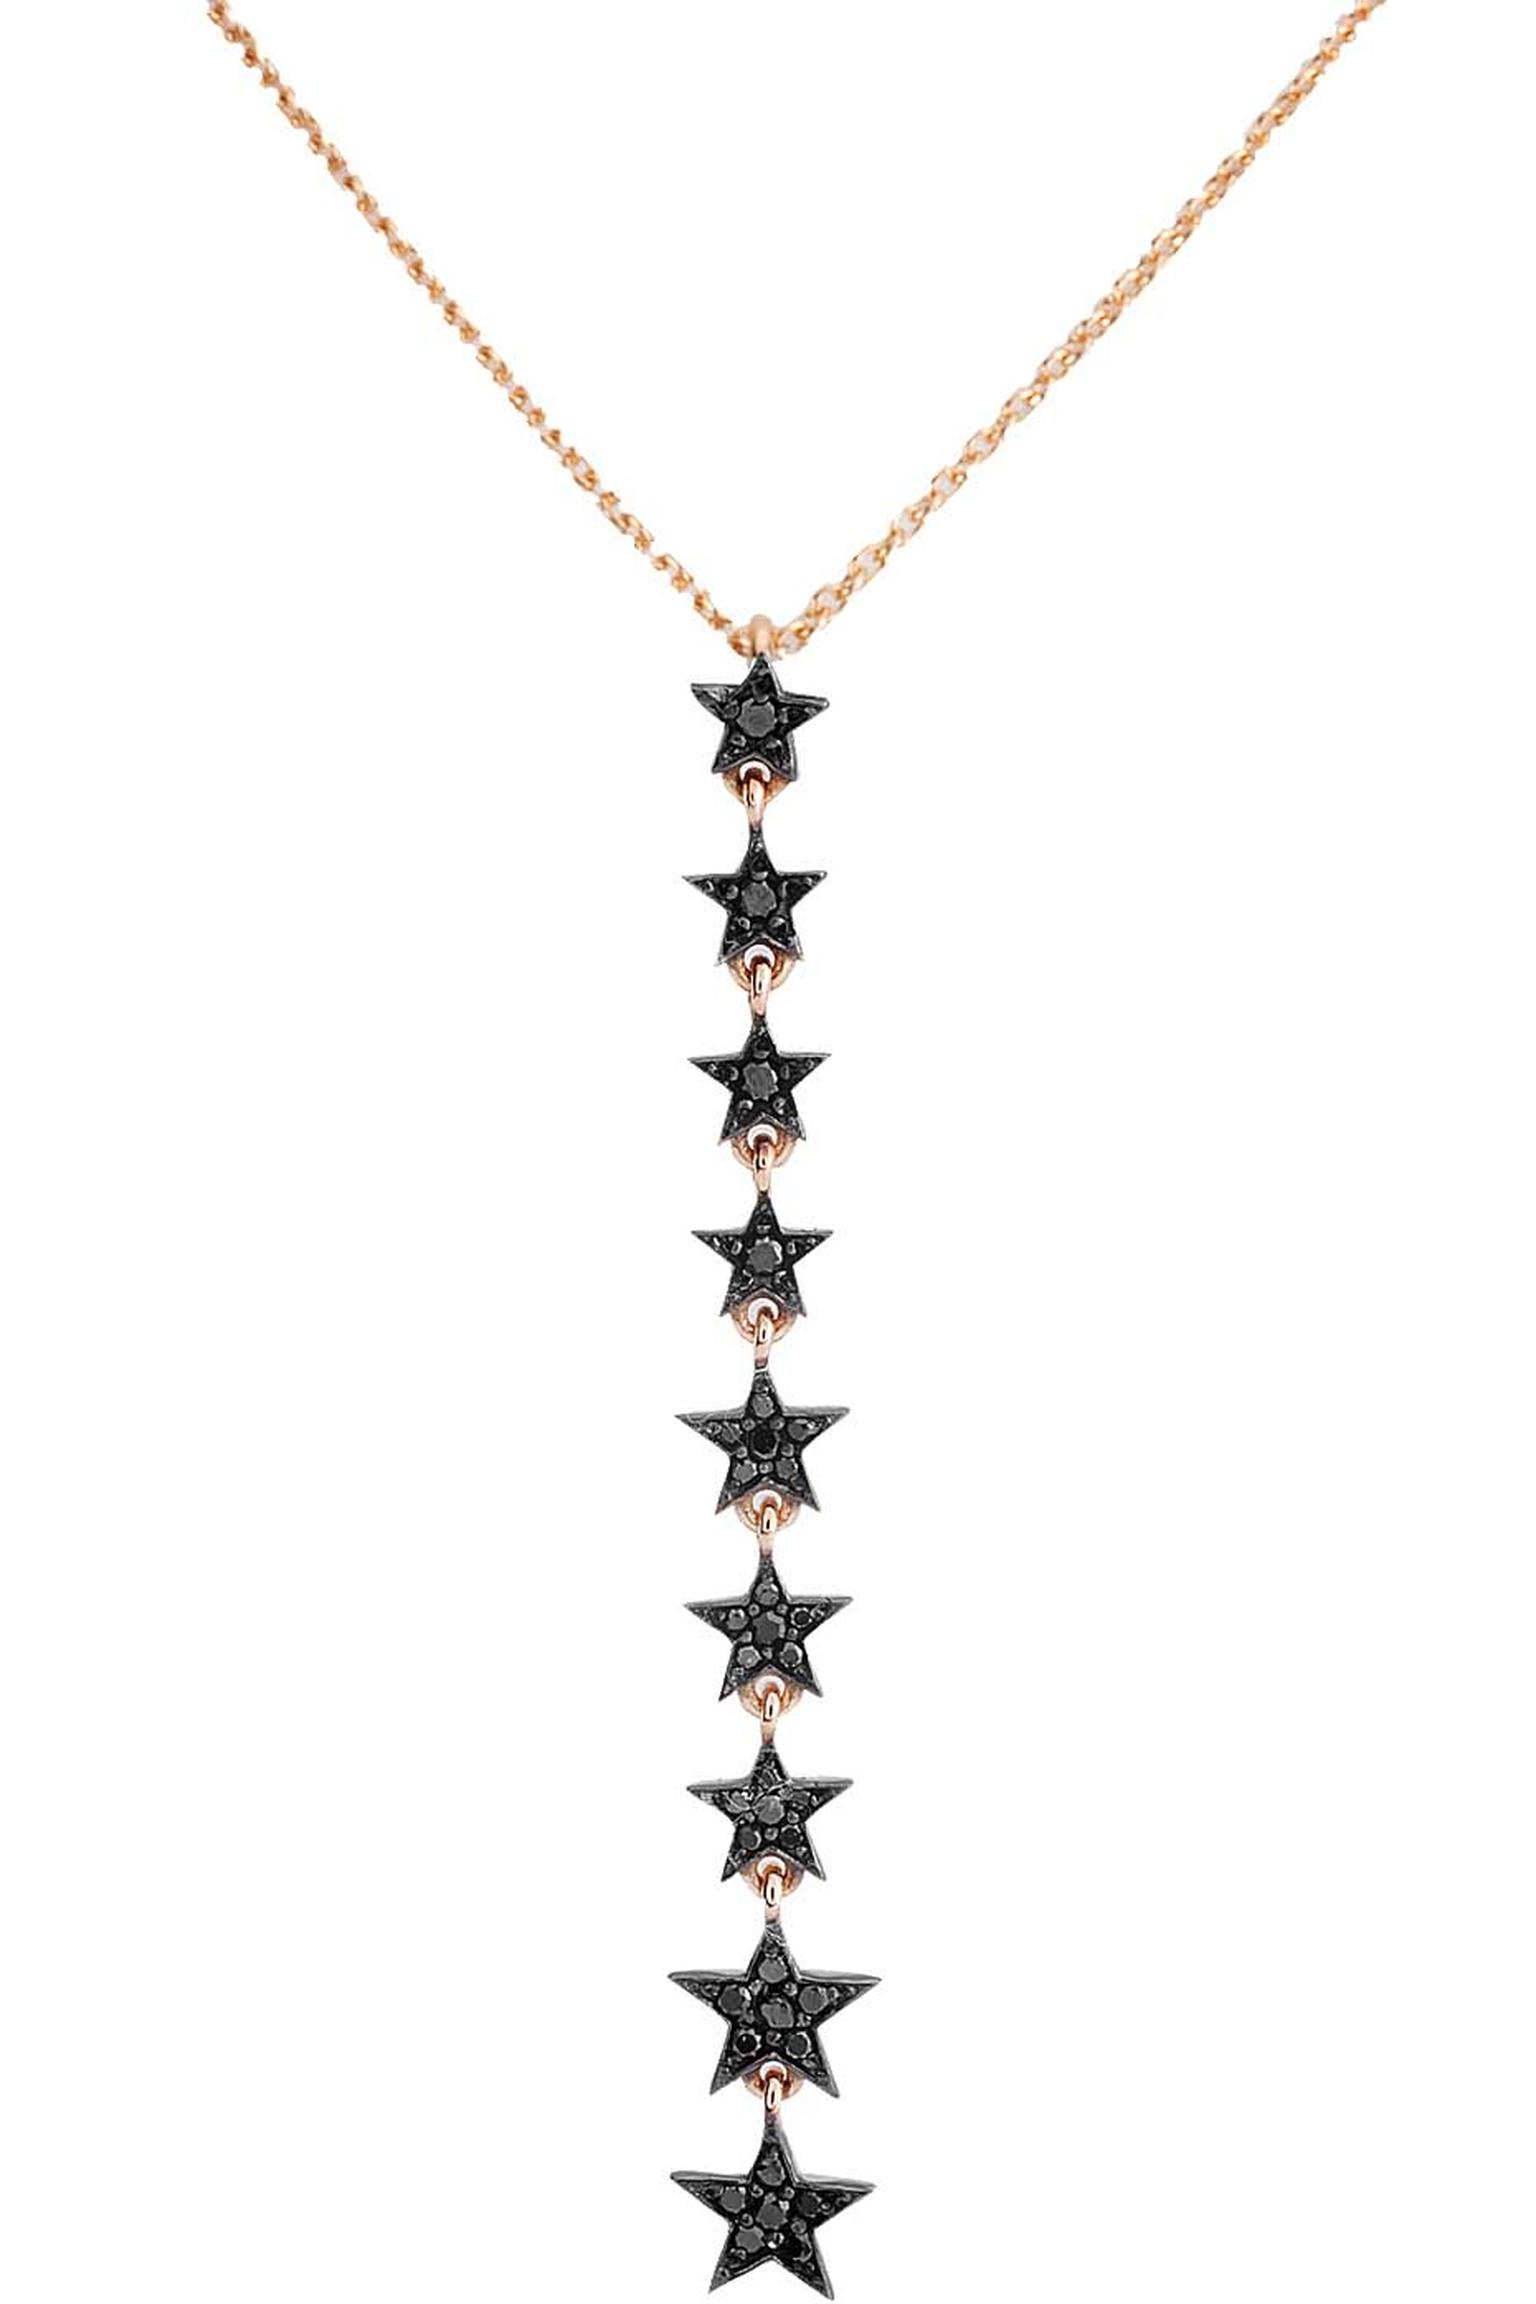 Kismet by Milka black diamond star necklace.